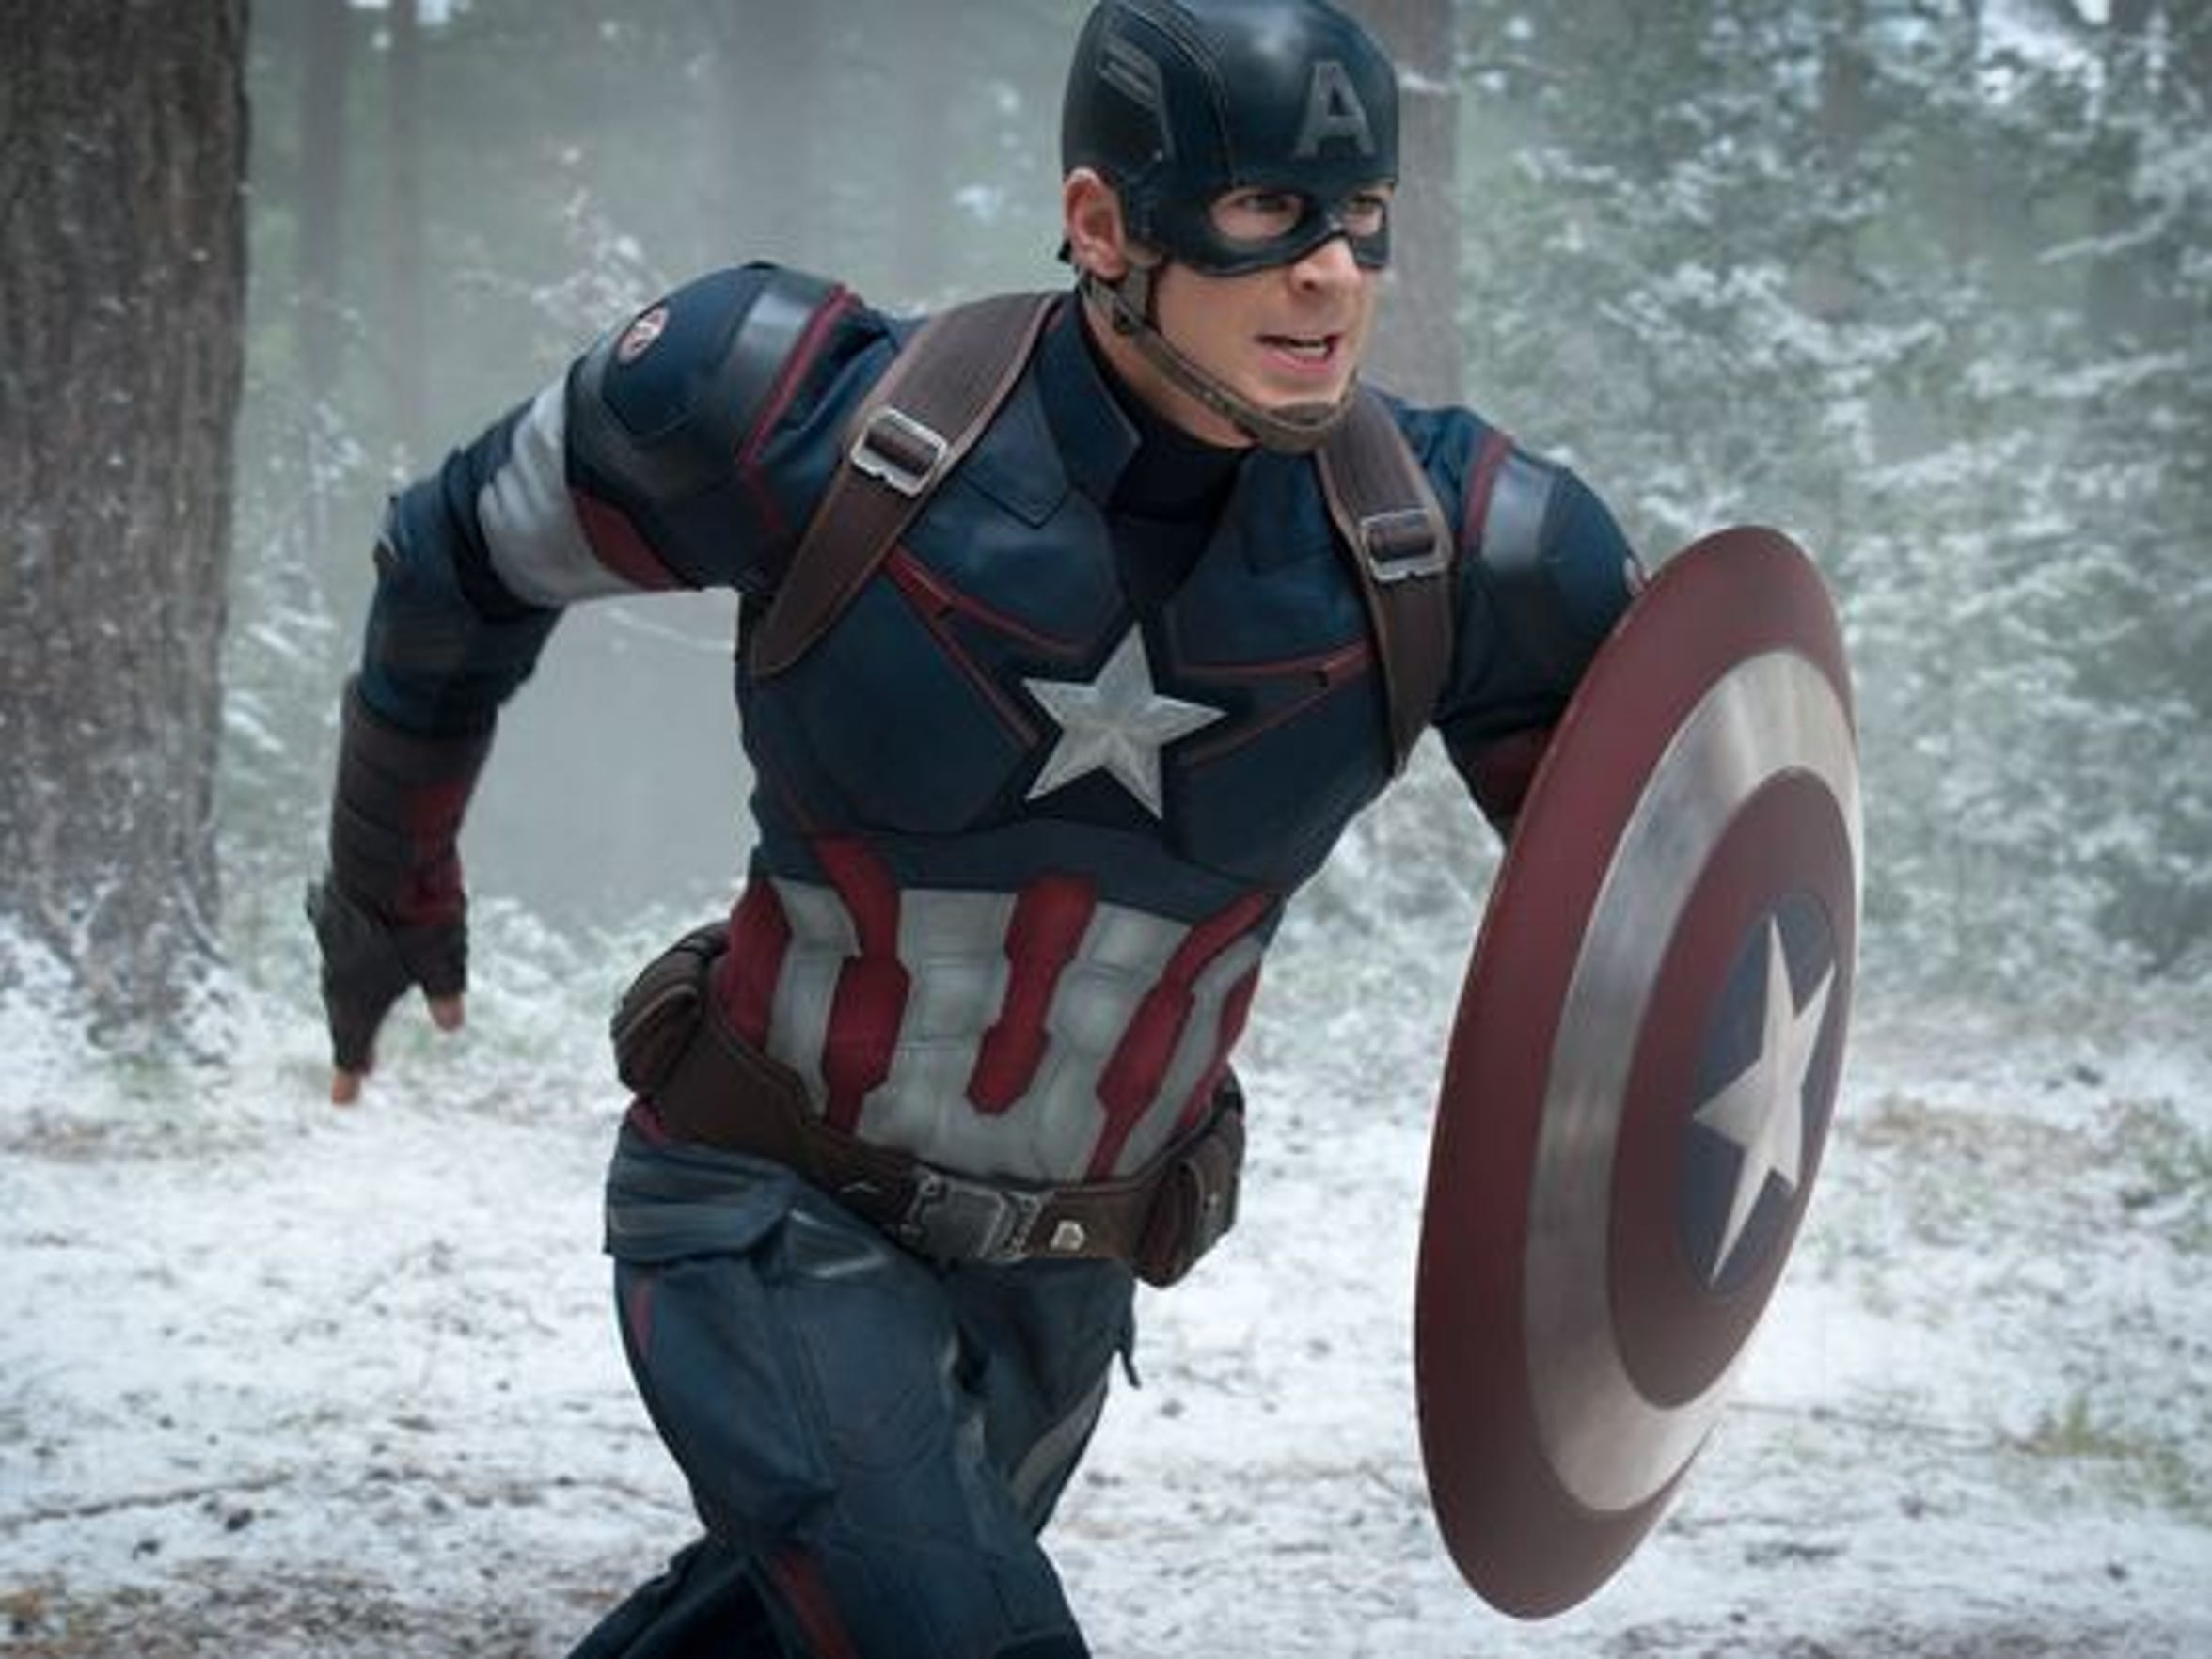 'Captain America: The First Avenger' will be shown Tuesday as part of the Abilene Freedom Festival.